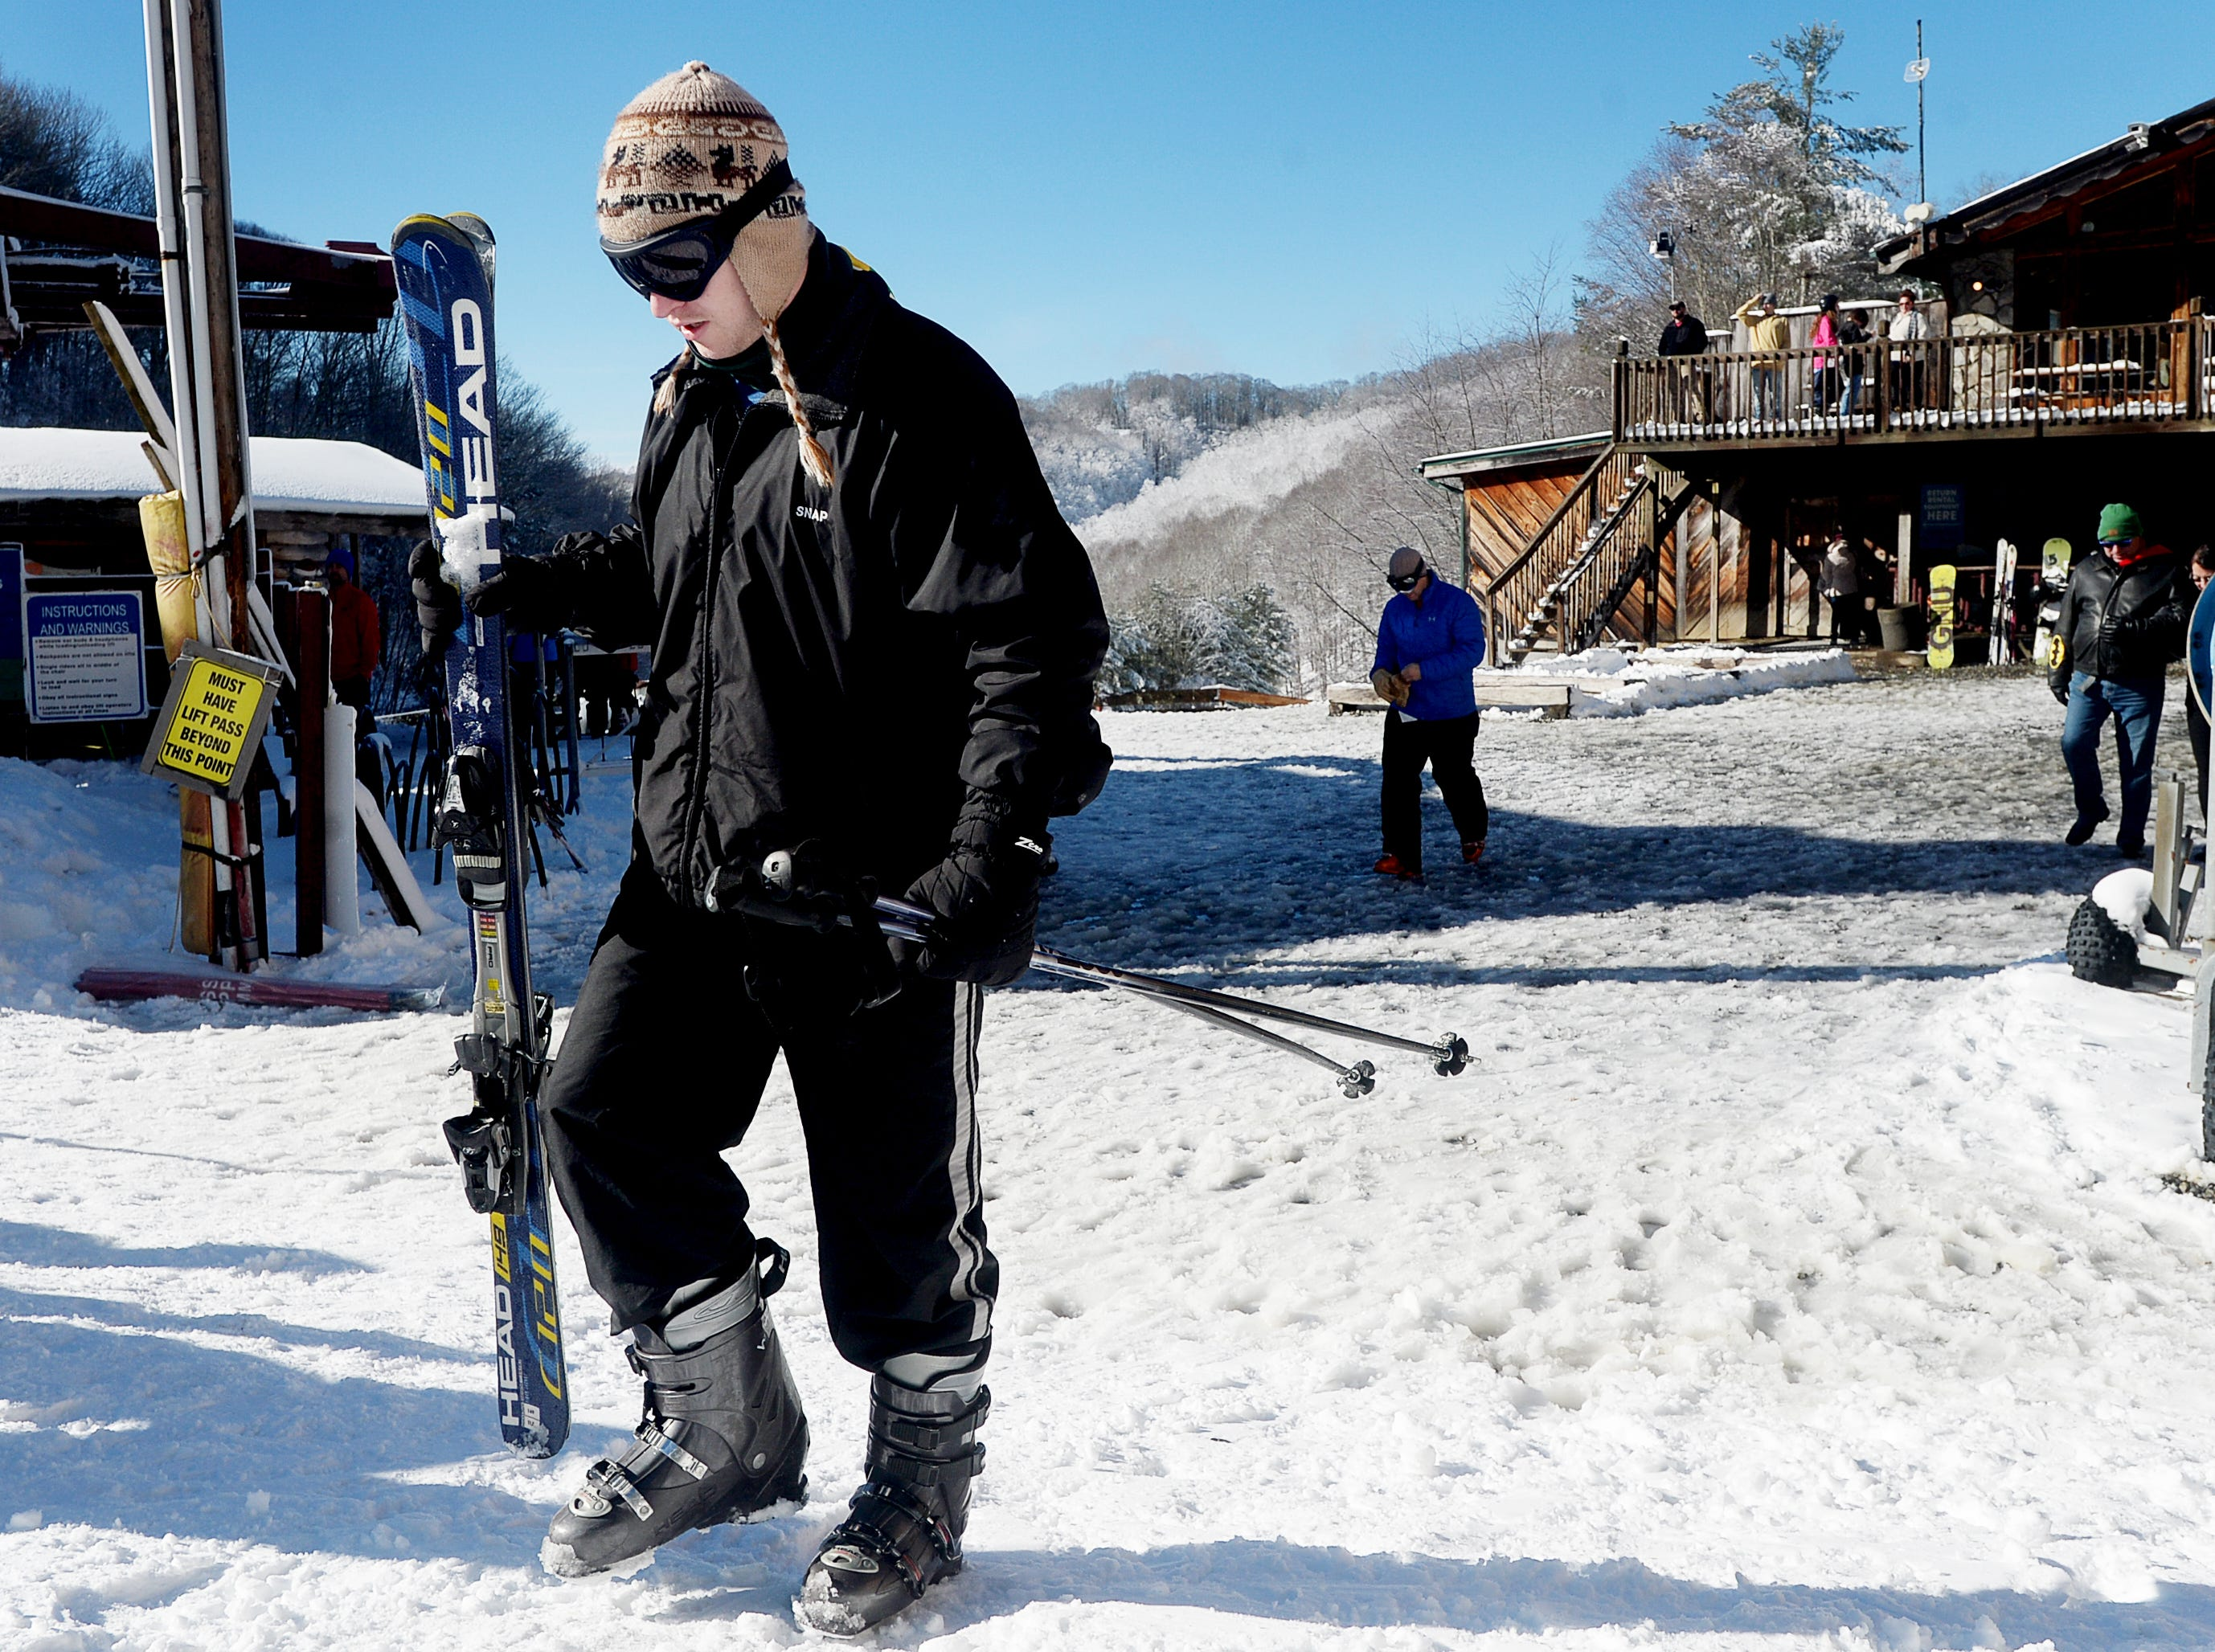 Charles Waddy, of Georgia, carries his skis as he heads to the chairlift at Wolf Ridge Ski Resort in Mars Hill Dec. 22, 2018.